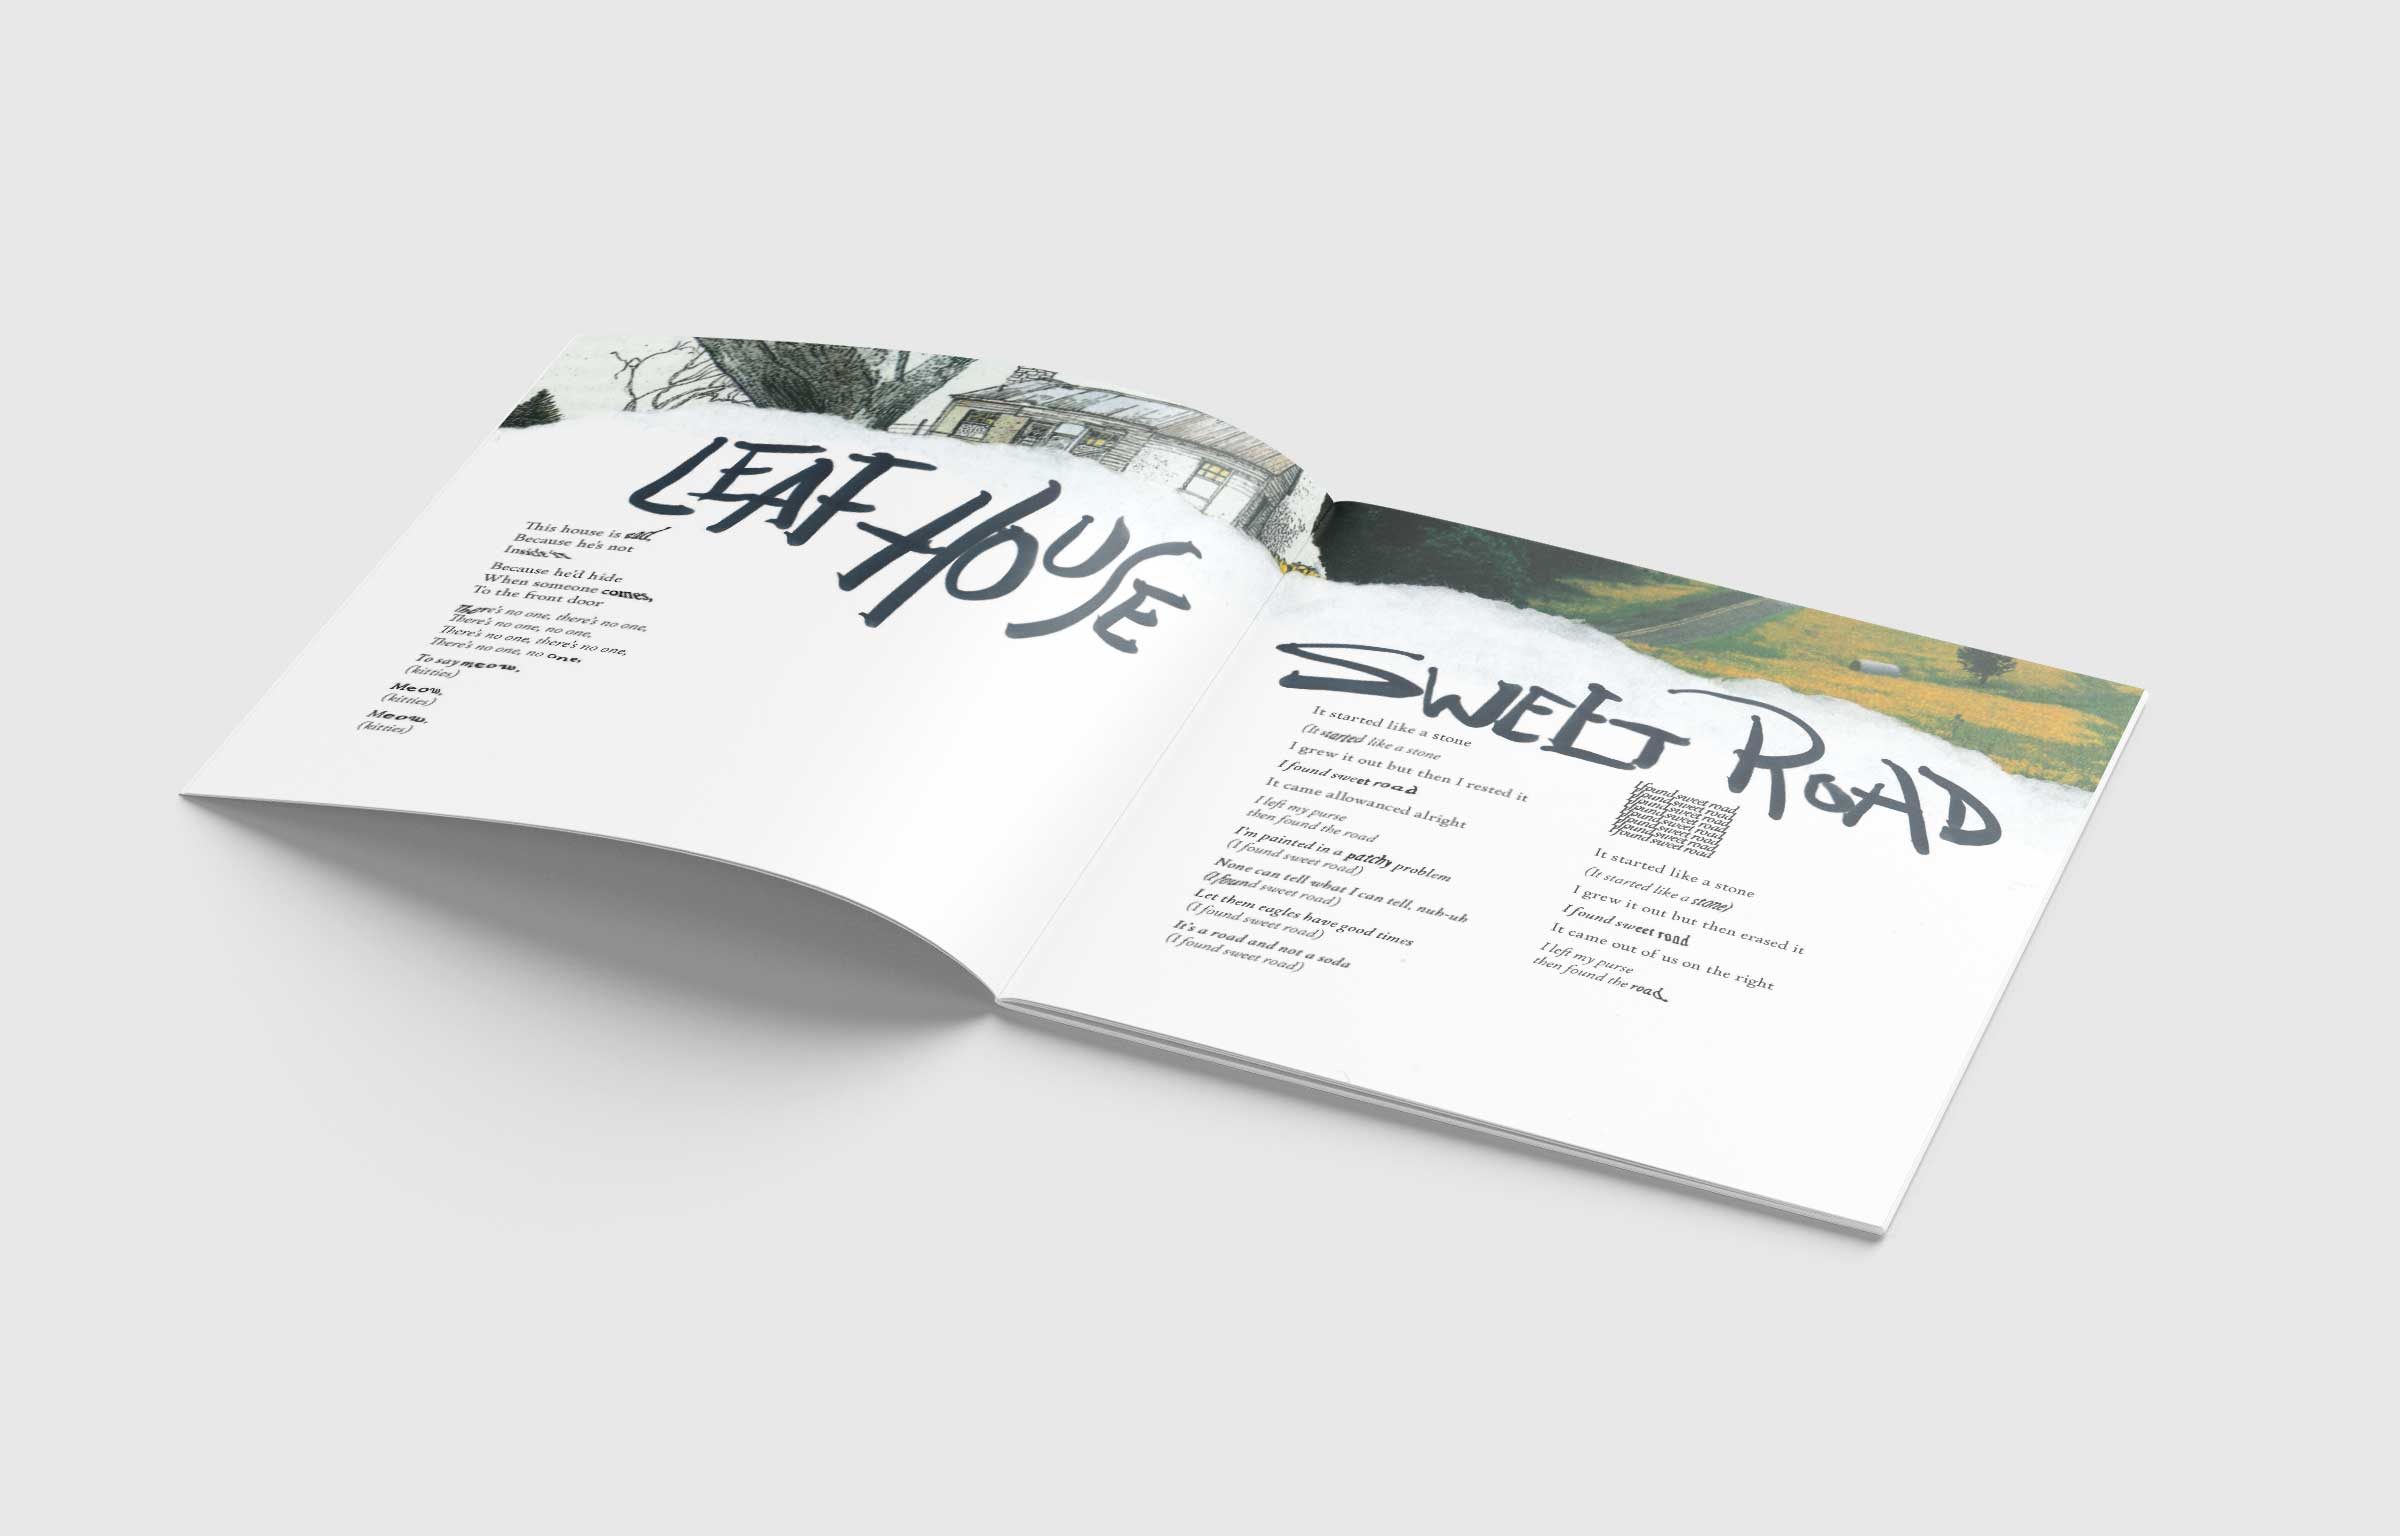 Photo of a spread for lyrics of two songs, Leaf House and Sweet Road by Animal Collective. Spreads show combination of collages, hand warped words, and hand drawn titles.